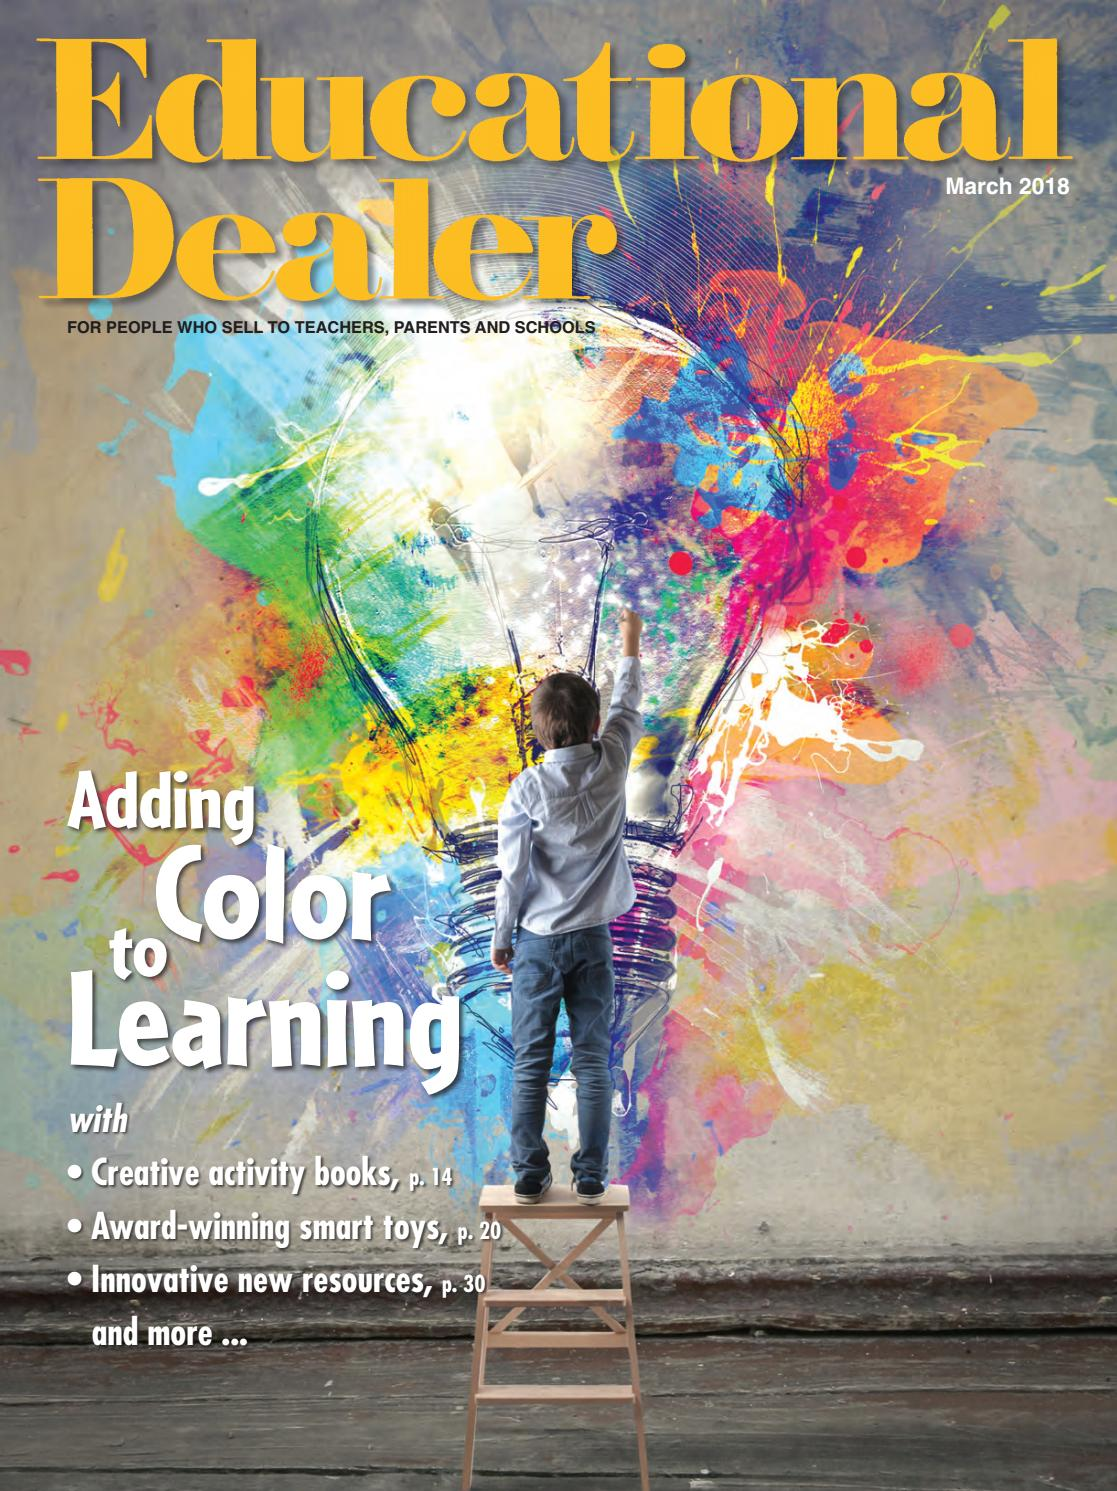 Educational dealer mar 2018 by fahy williams publishing issuu fandeluxe Image collections